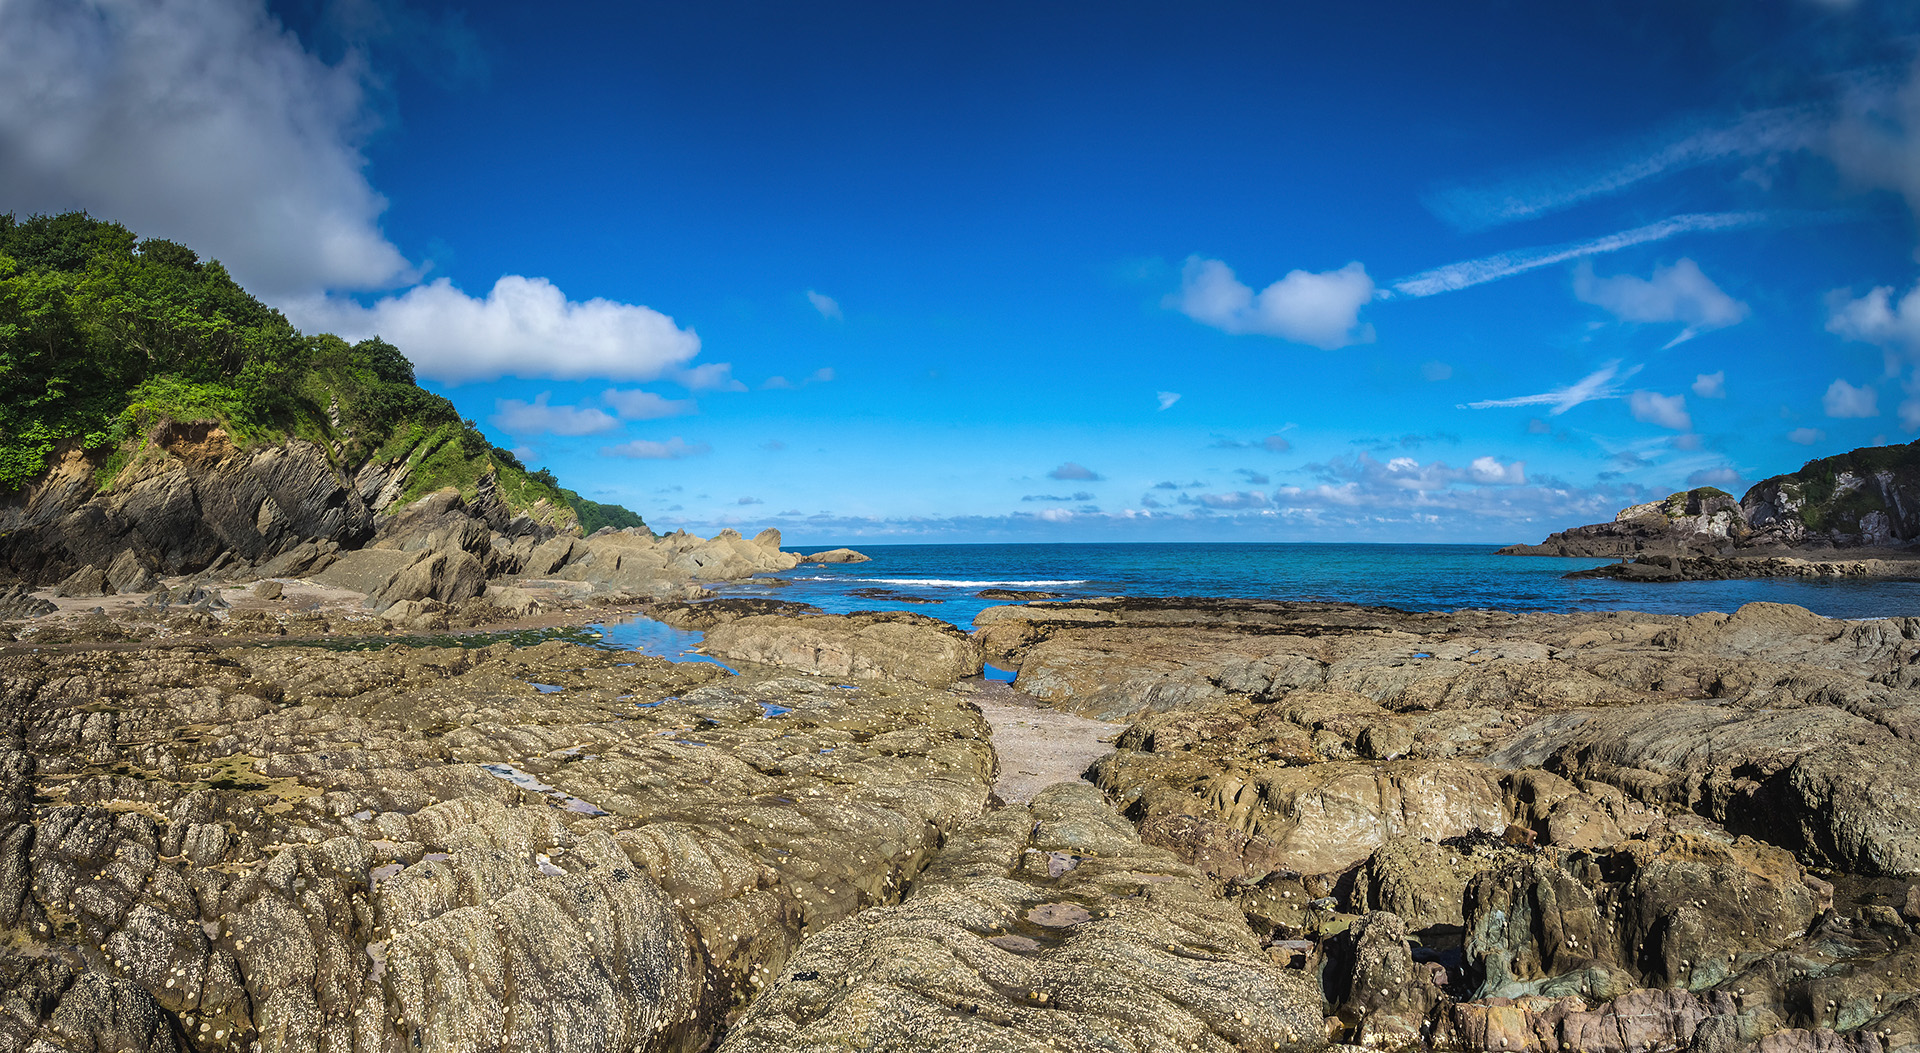 Combe martin beach Lee Bay cottages